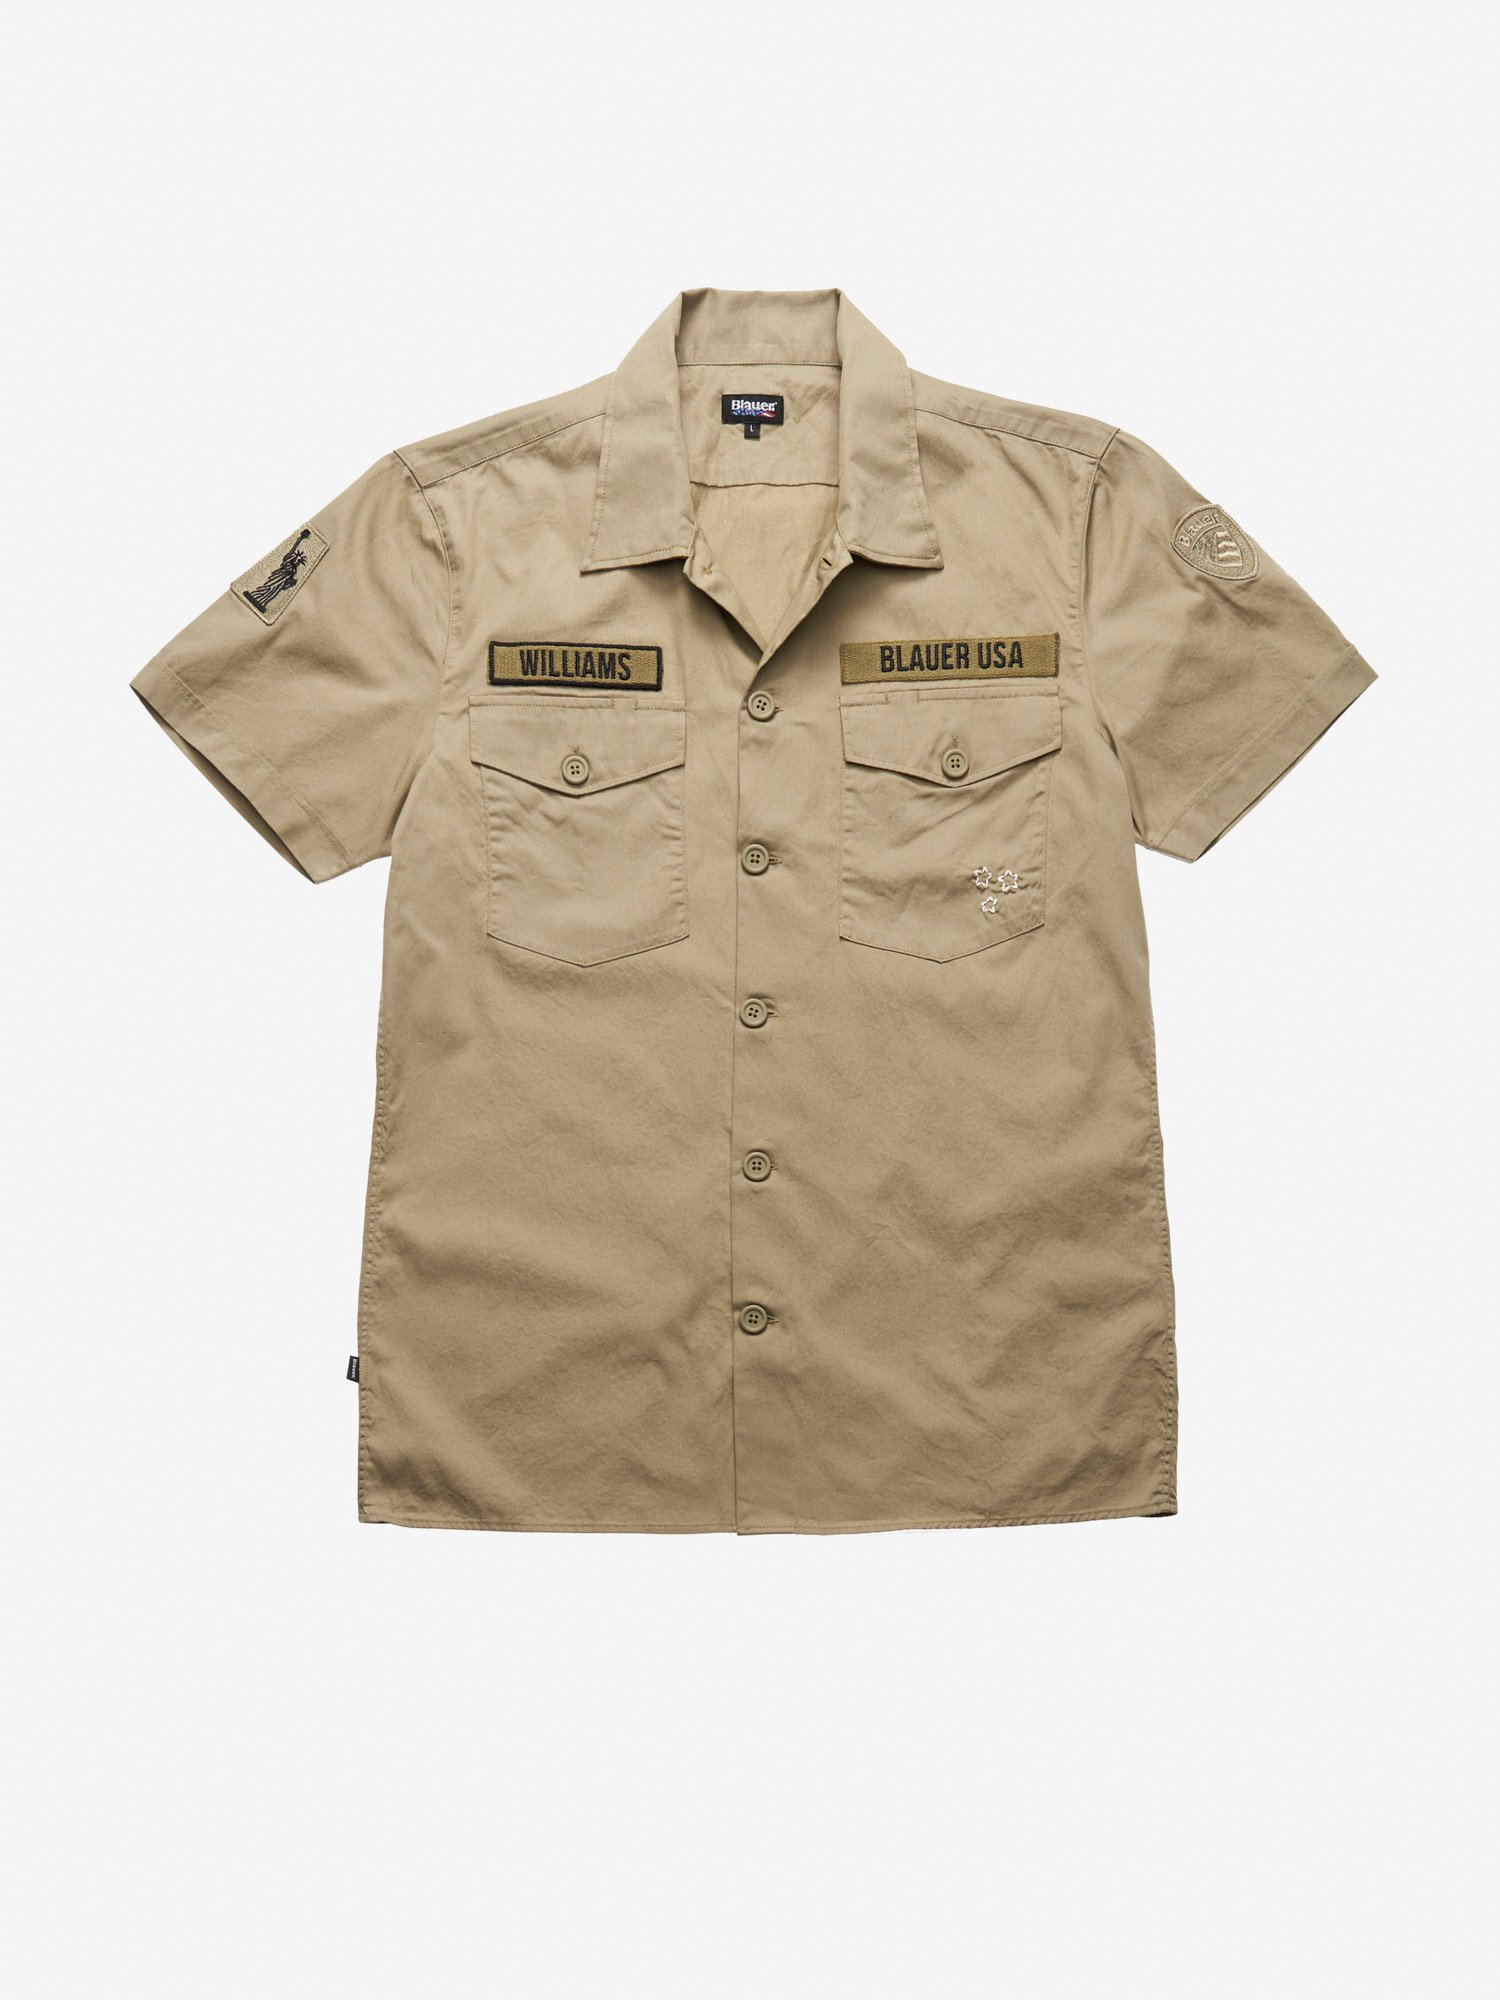 SHORT SLEEVE MILITARY SHIRT - Blauer